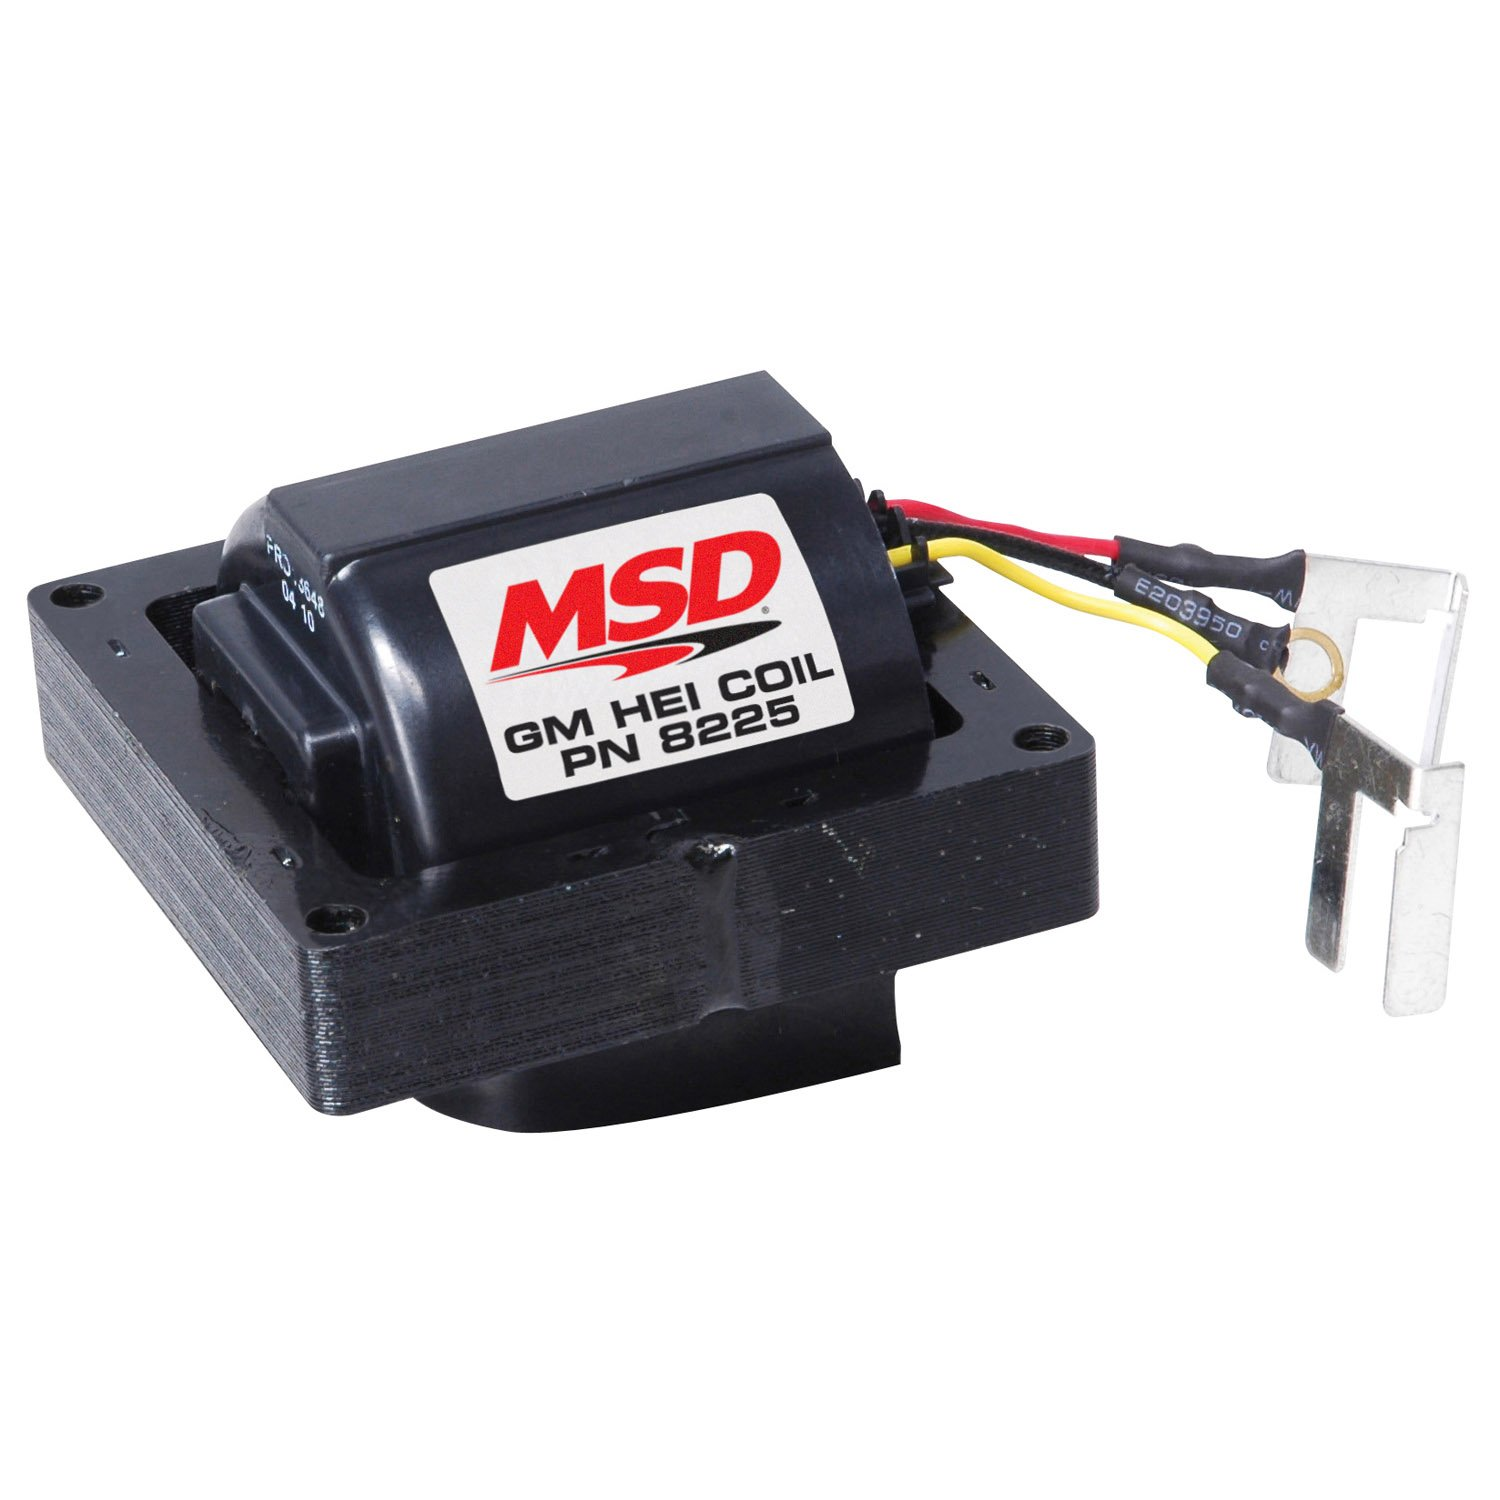 Msd 8225 Gm Hei Distributor Coil Old 403 Wiring Diagram Image